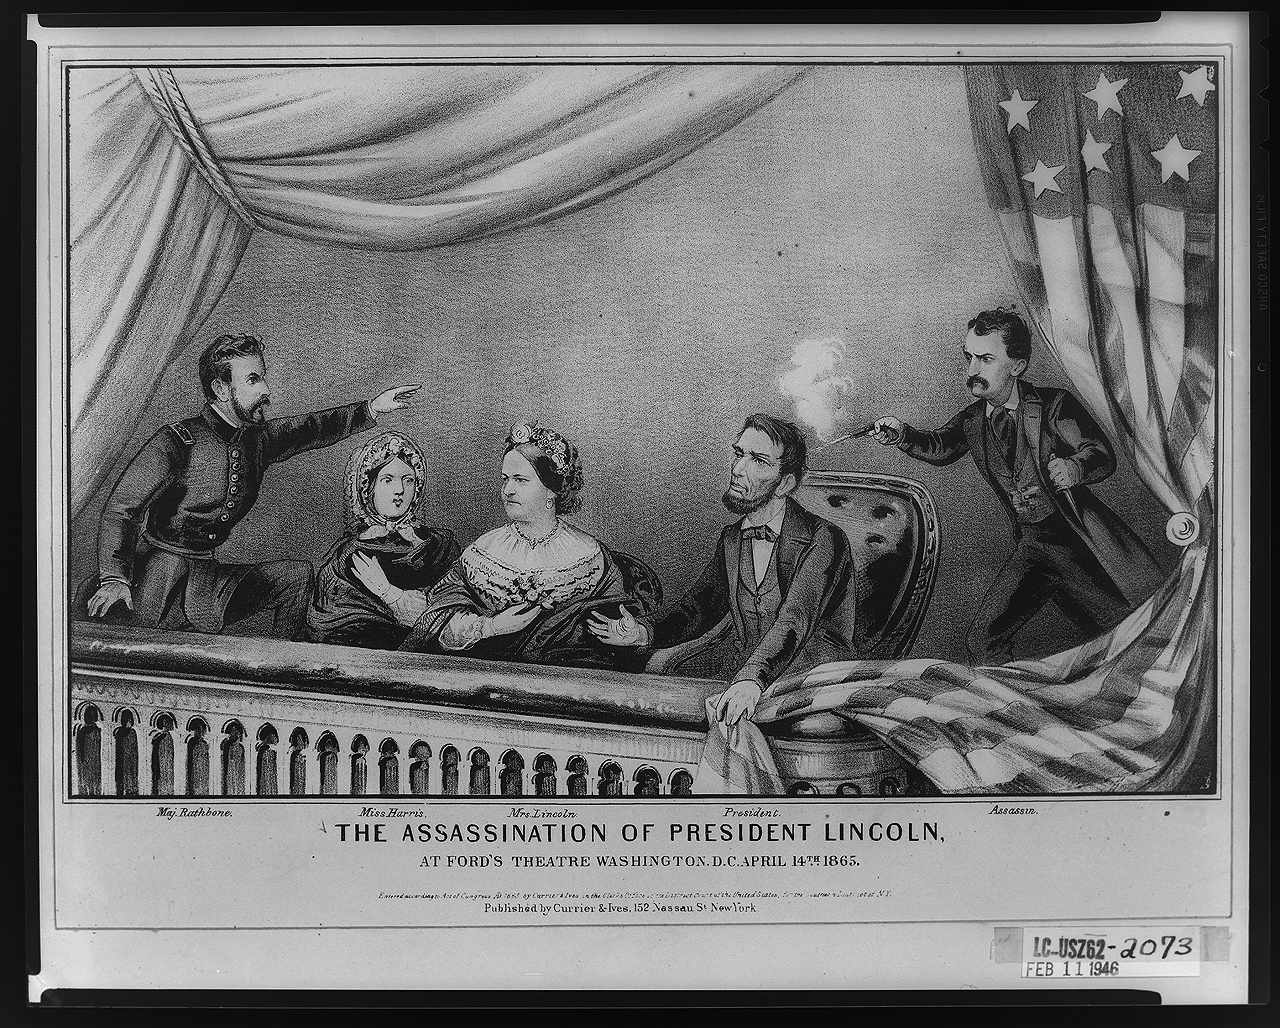 Currier & Ives Illustration of the Lincoln Assassination